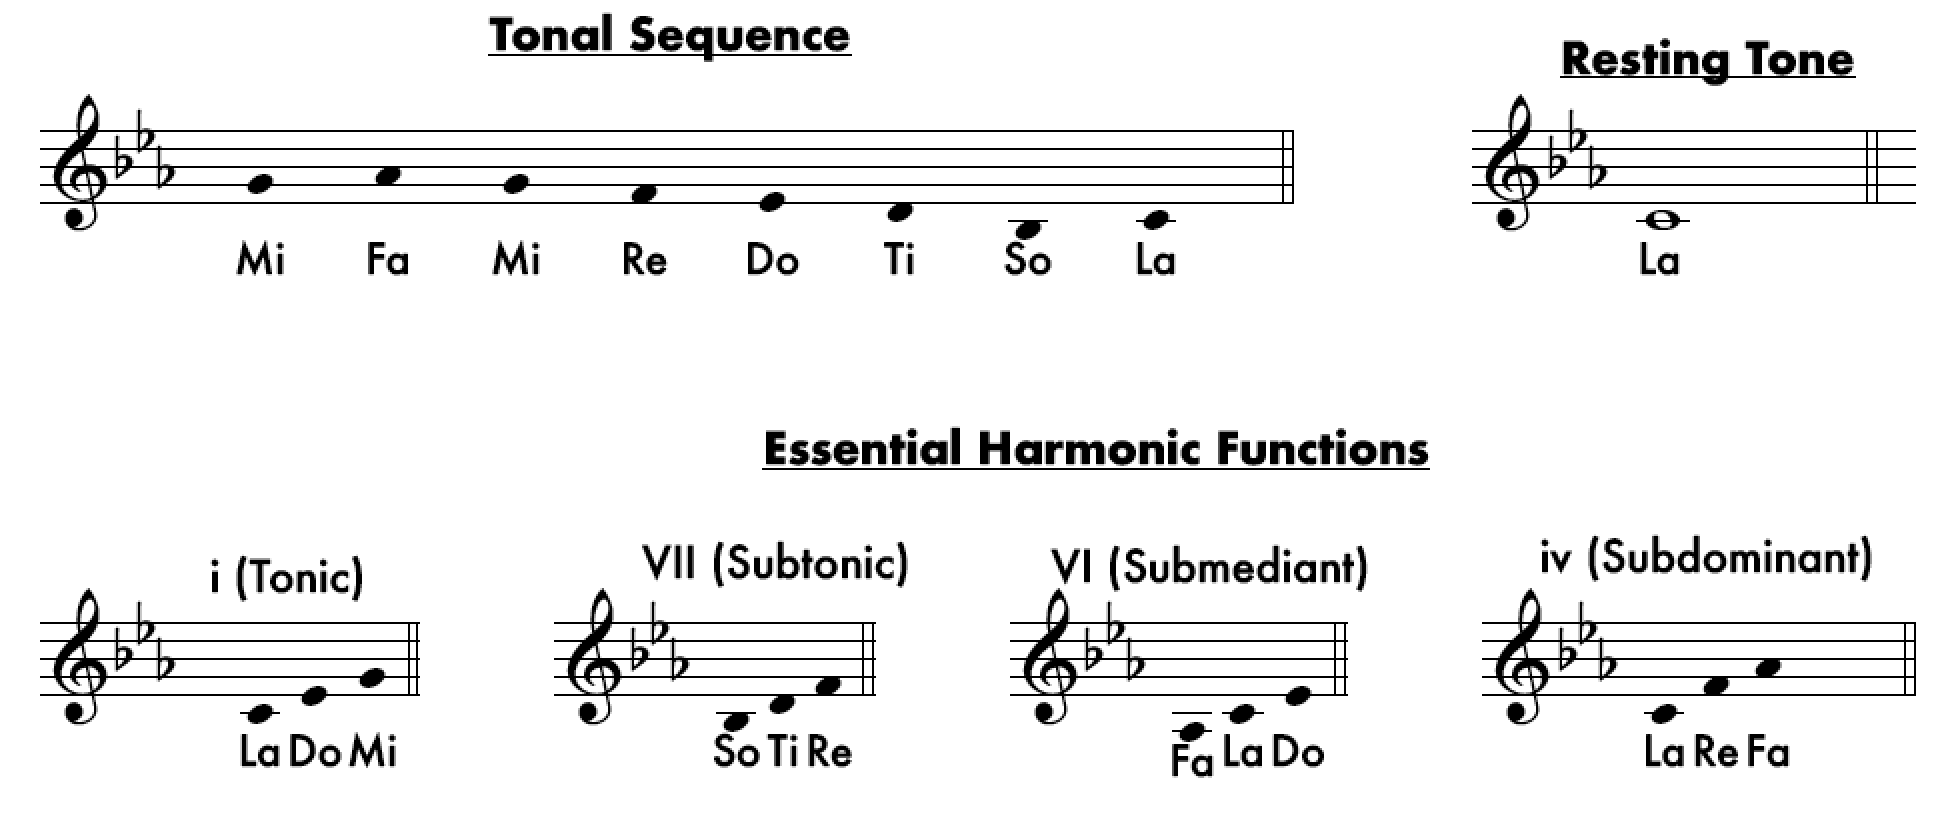 Aeolian Tonality - From Major to Locrian: An Overview of The Tonalities